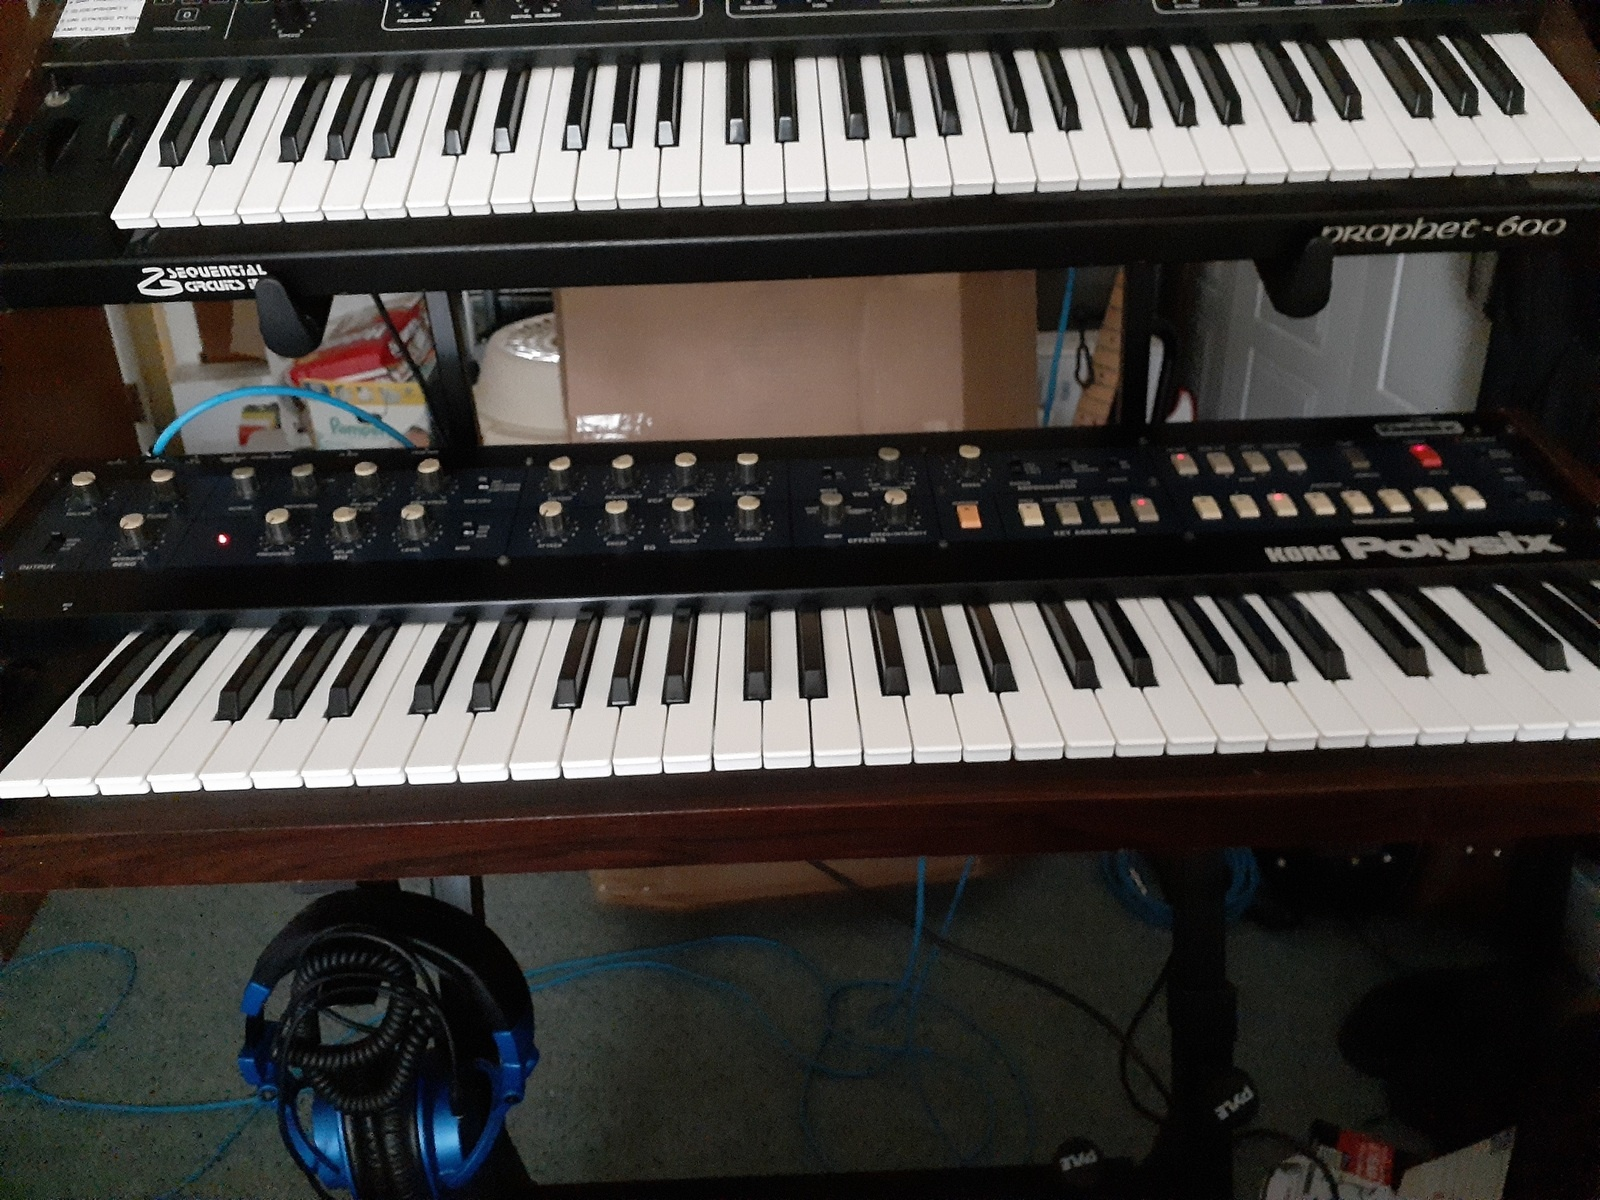 jimmarchi1's music gear photo containing Korg PolySix and Sequential Circuits Prophet 600 Synthesizer